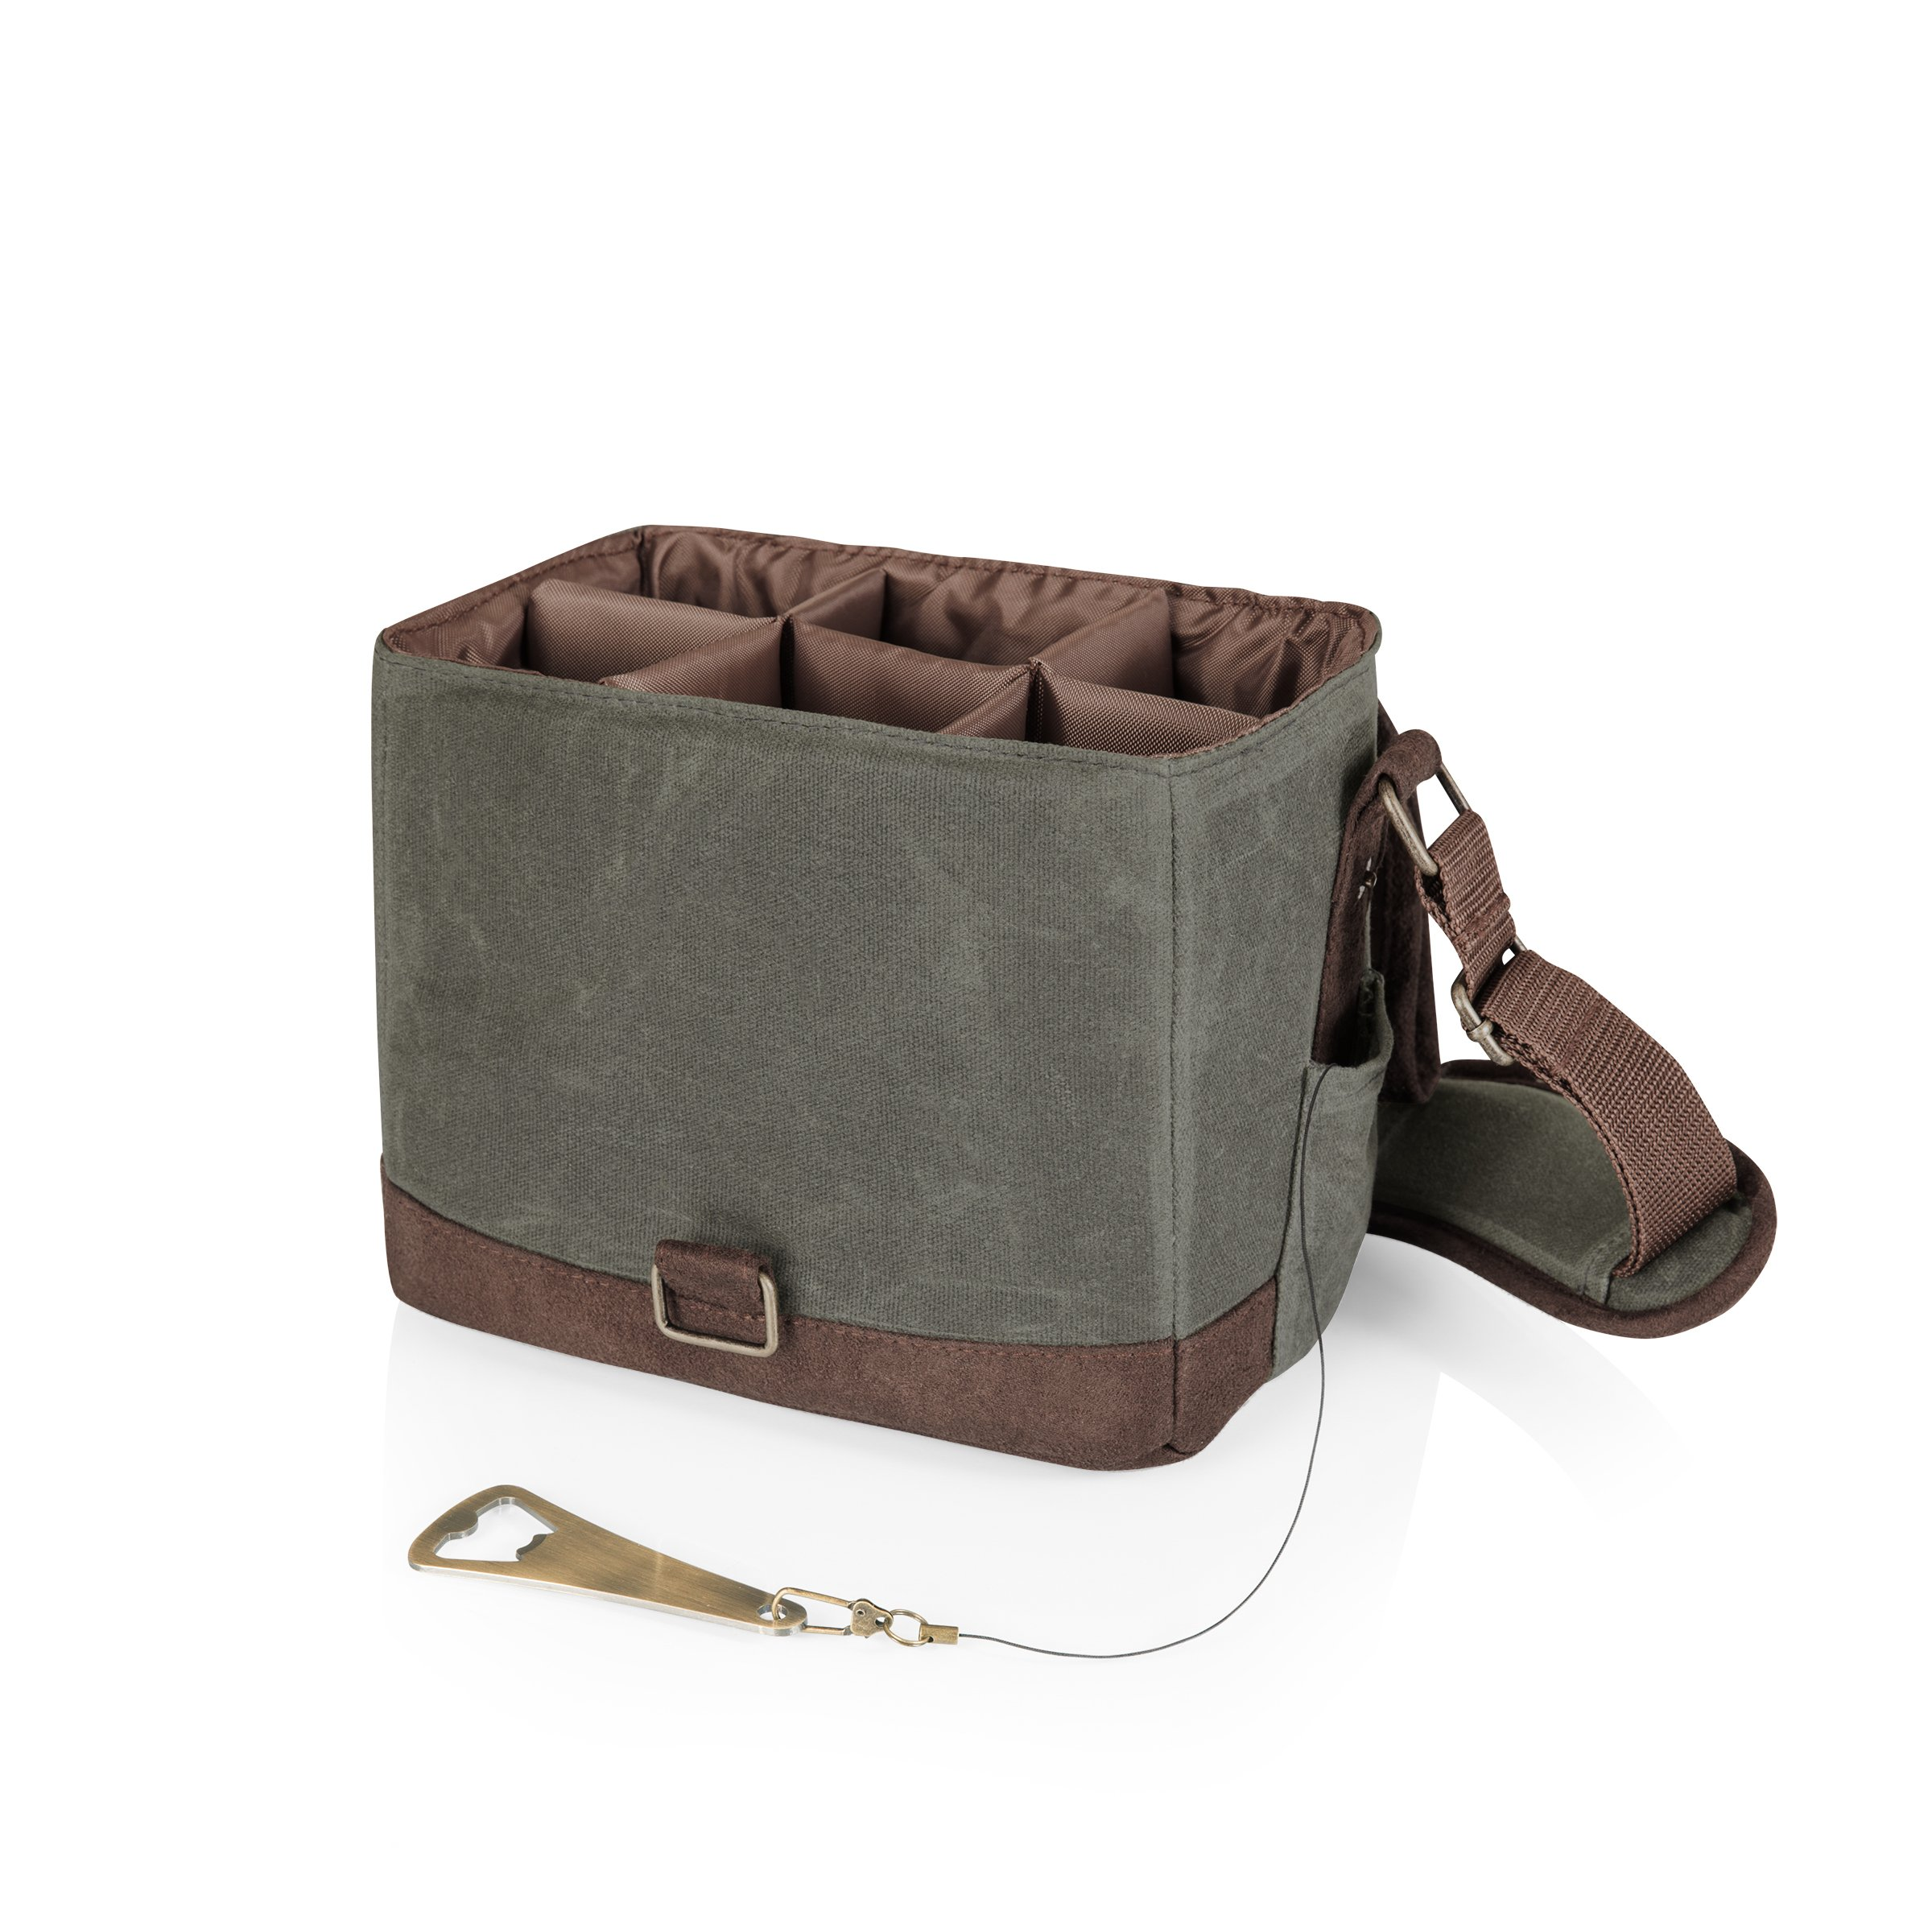 LEGACY - a Picnic Time Brand 6-Bottle Beer Caddy with Integrated Bottle Opener, Khaki Green/Brown by LEGACY - a Picnic Time Brand (Image #3)